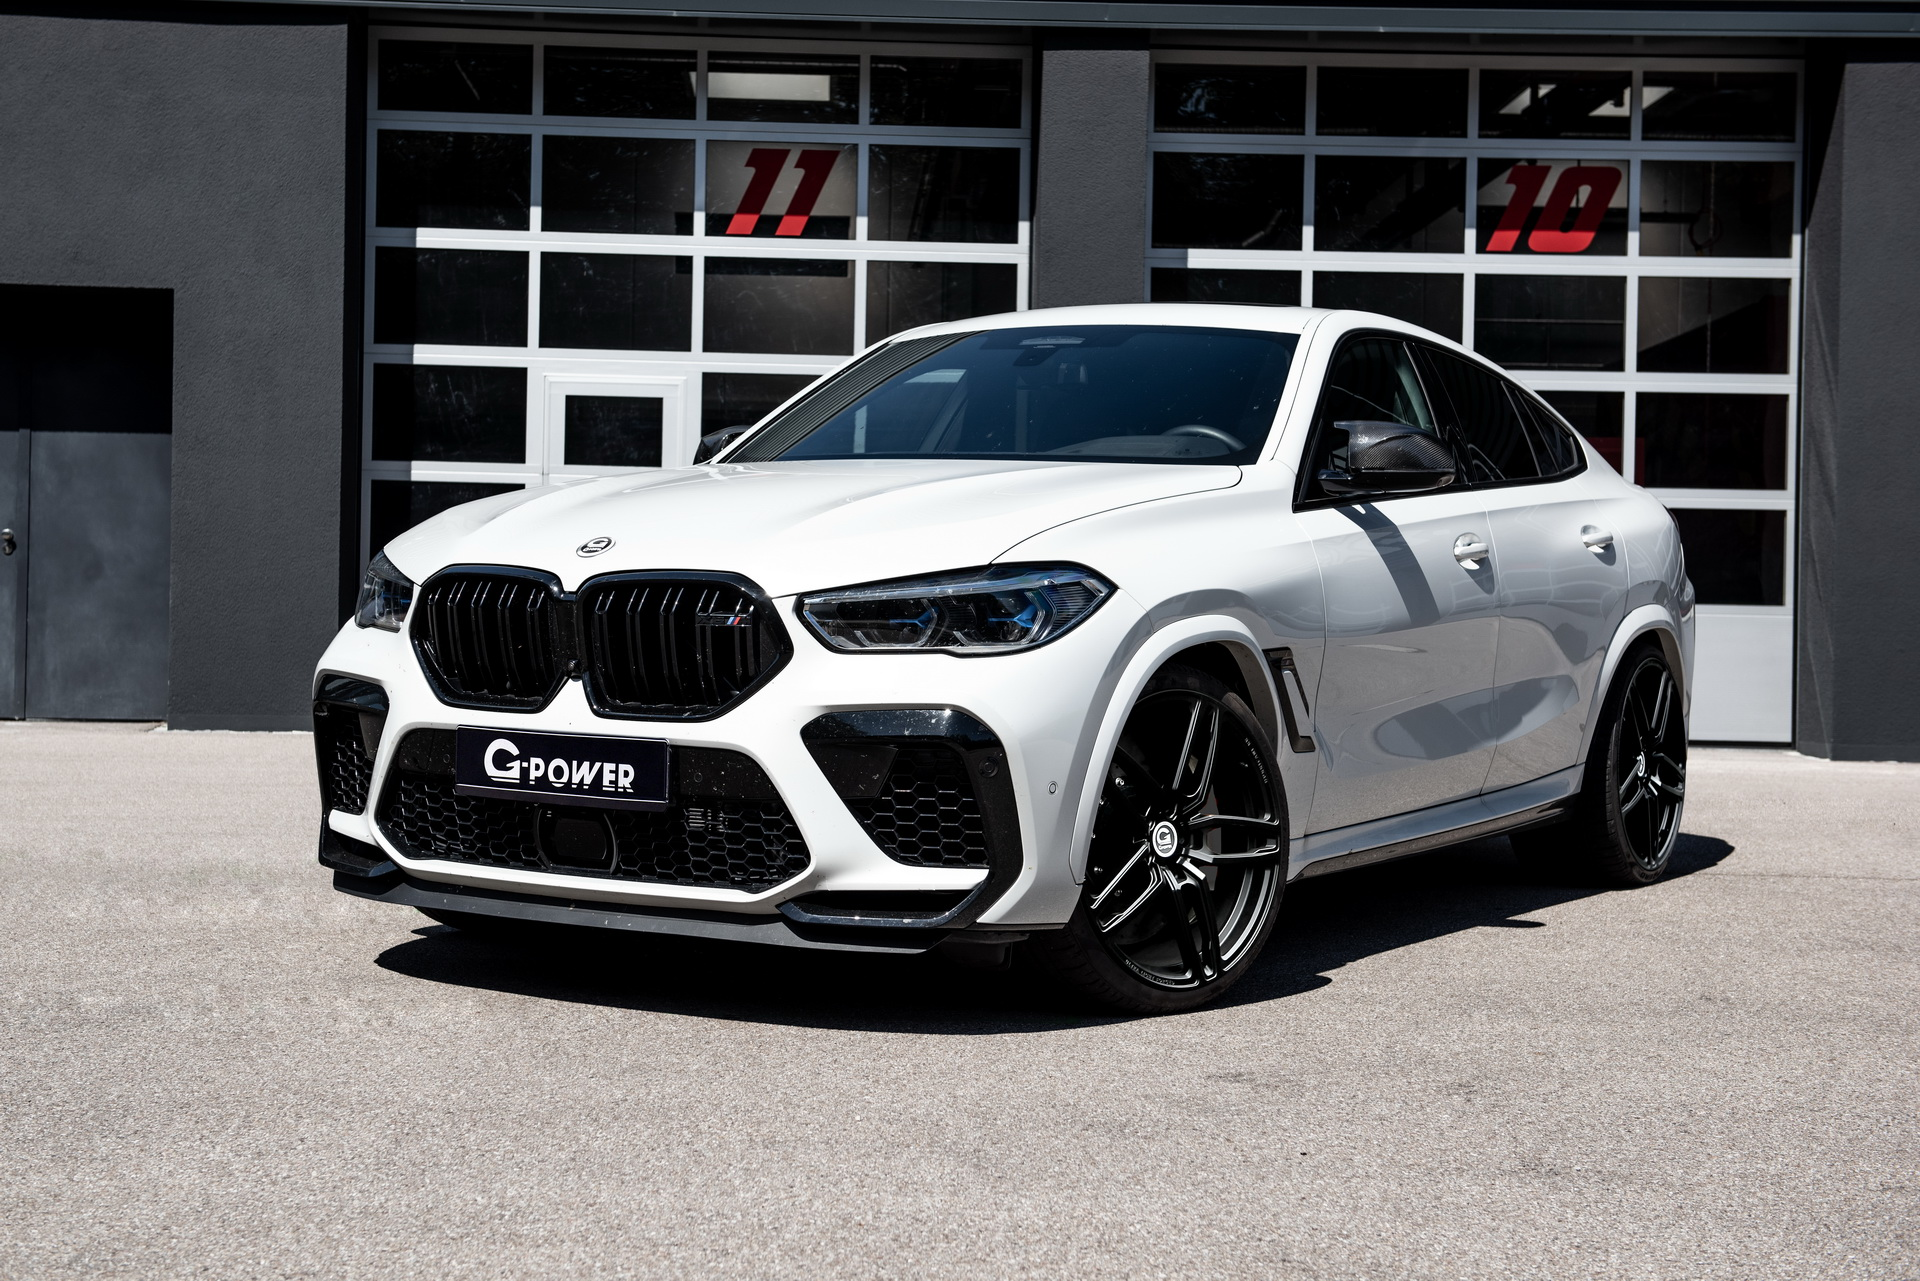 G Power S 789 Hp Bmw X6 M Competition Is An Absurdly Powerful Super Suv Carscoops